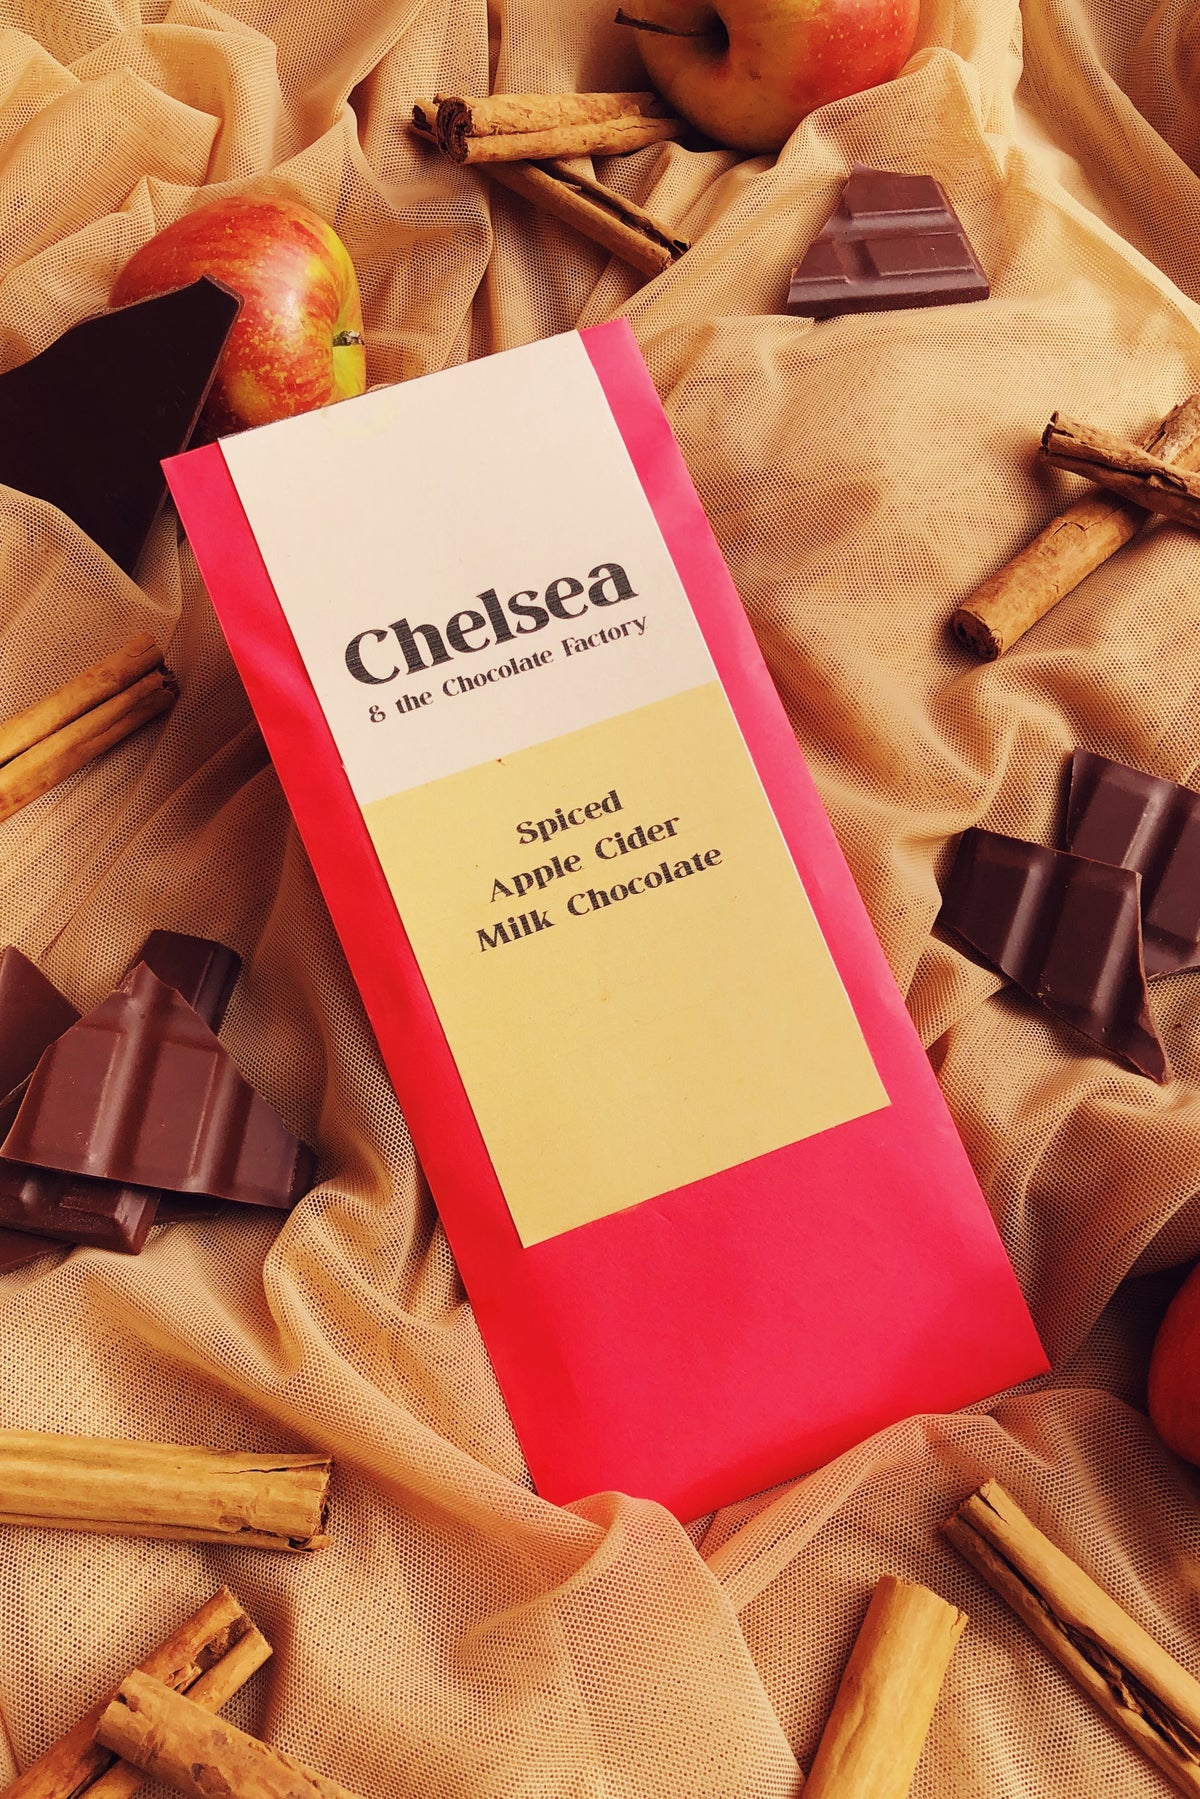 Apple Cider Milk Chocolate